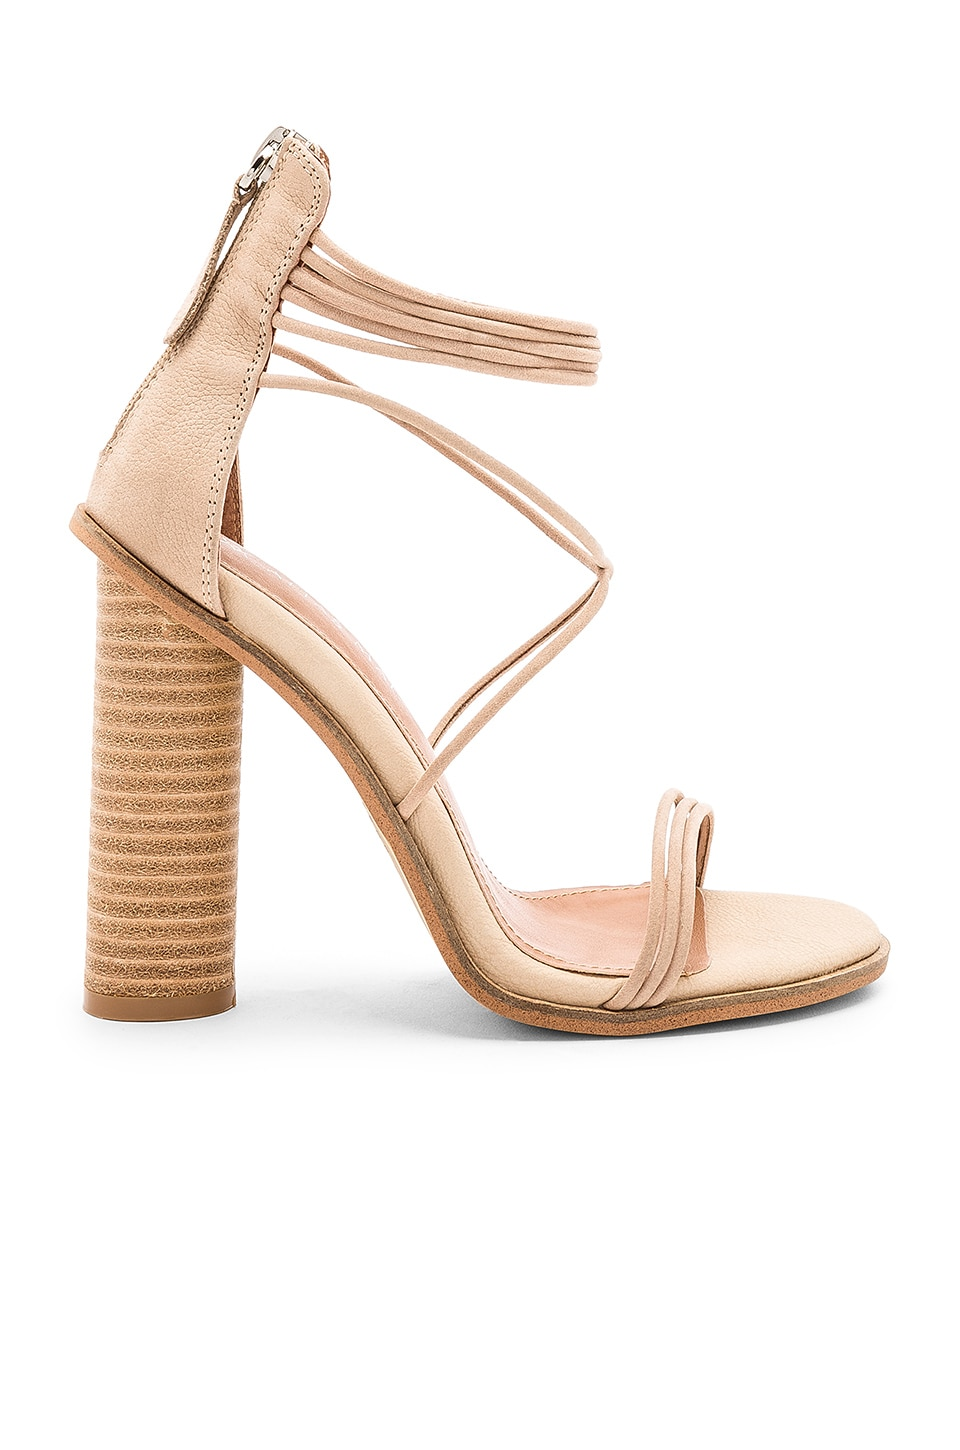 Alias Mae Aflux Sandal in Natural Nubuck